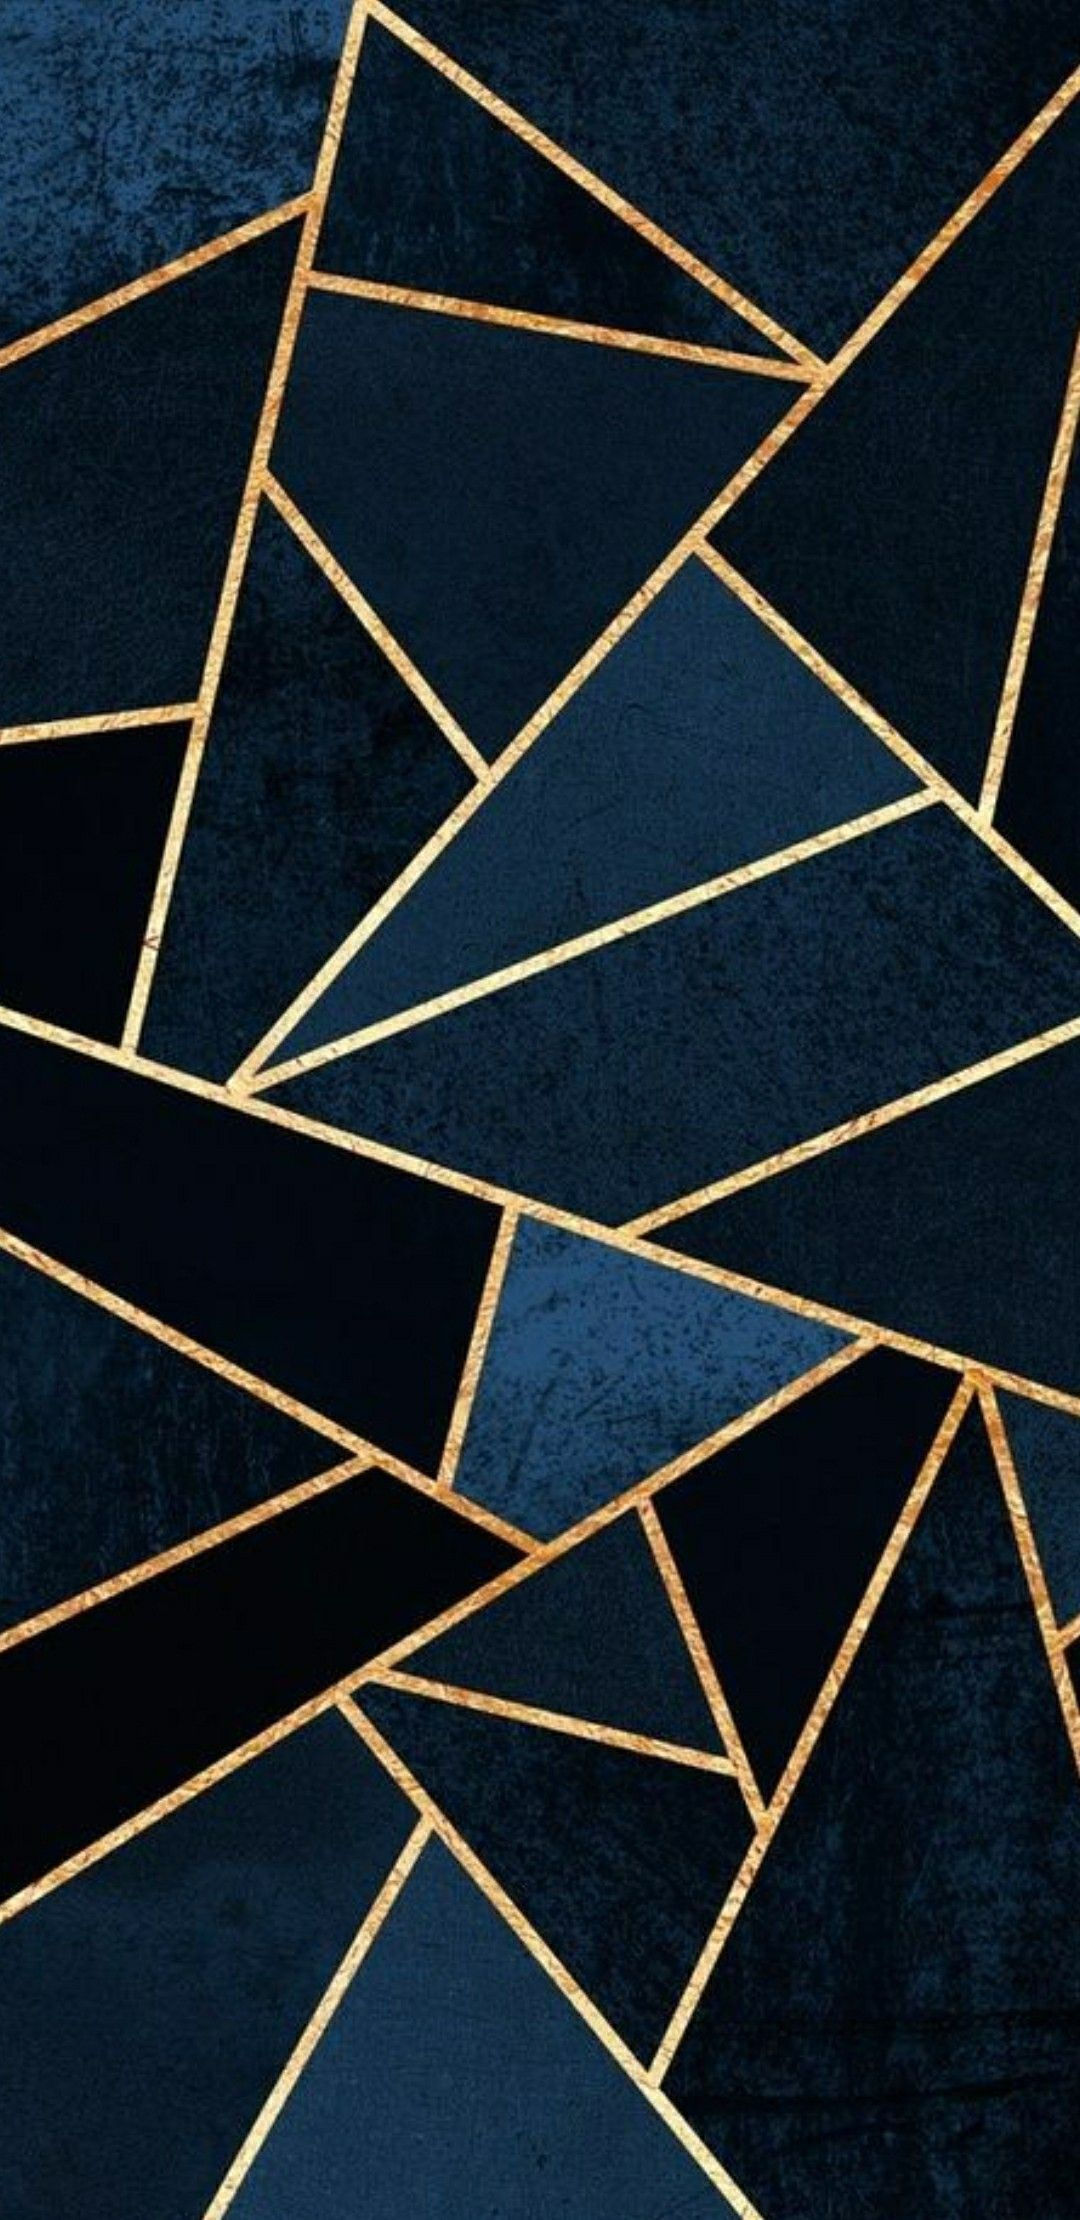 1080x2220 45+ Simple Gold Geometric Wallpapers - Download at WallpaperBro